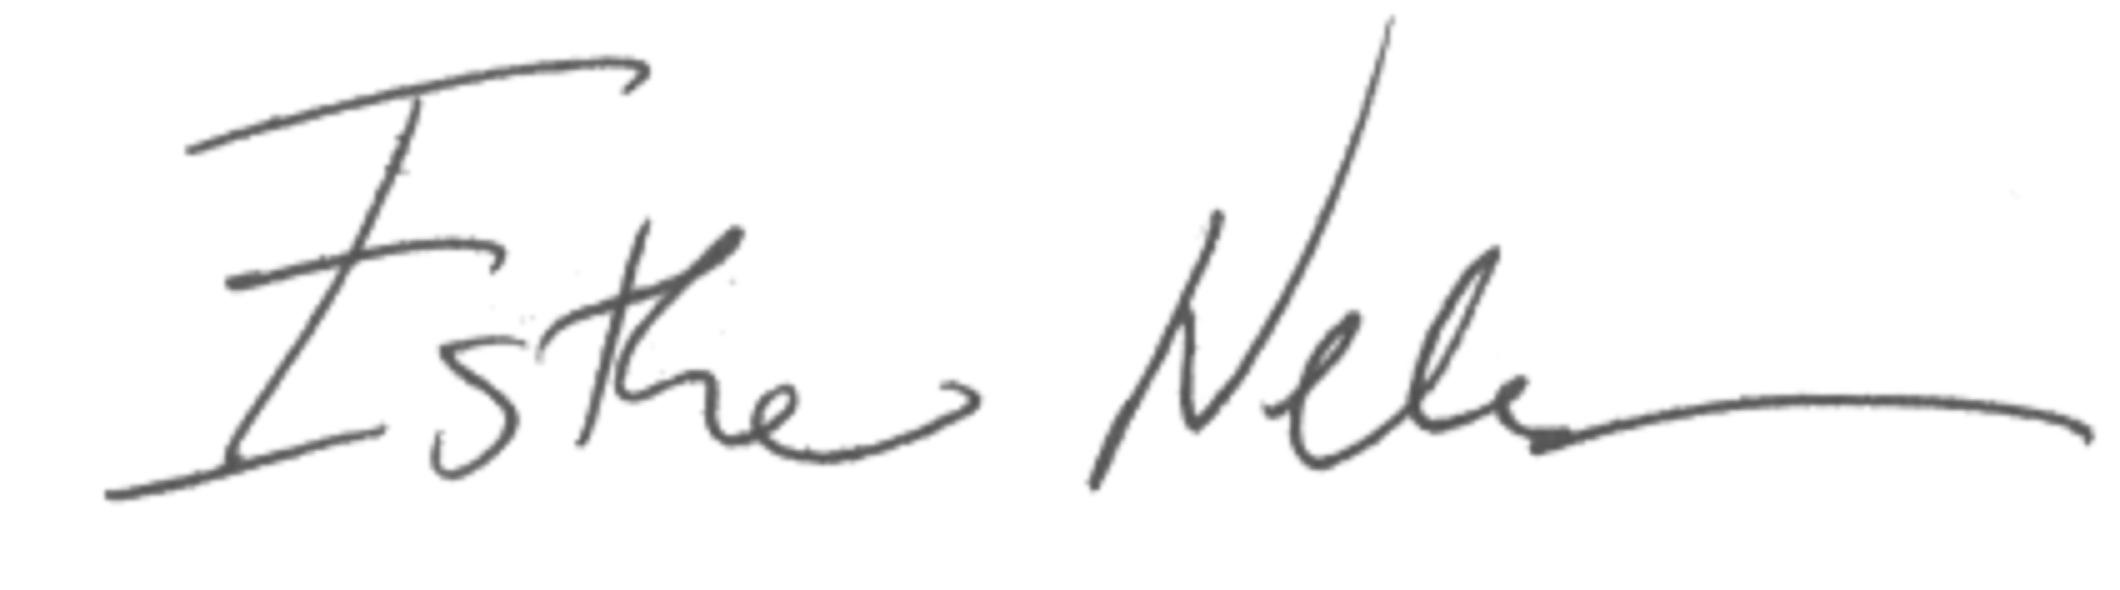 Esther signature_blown out.jpg